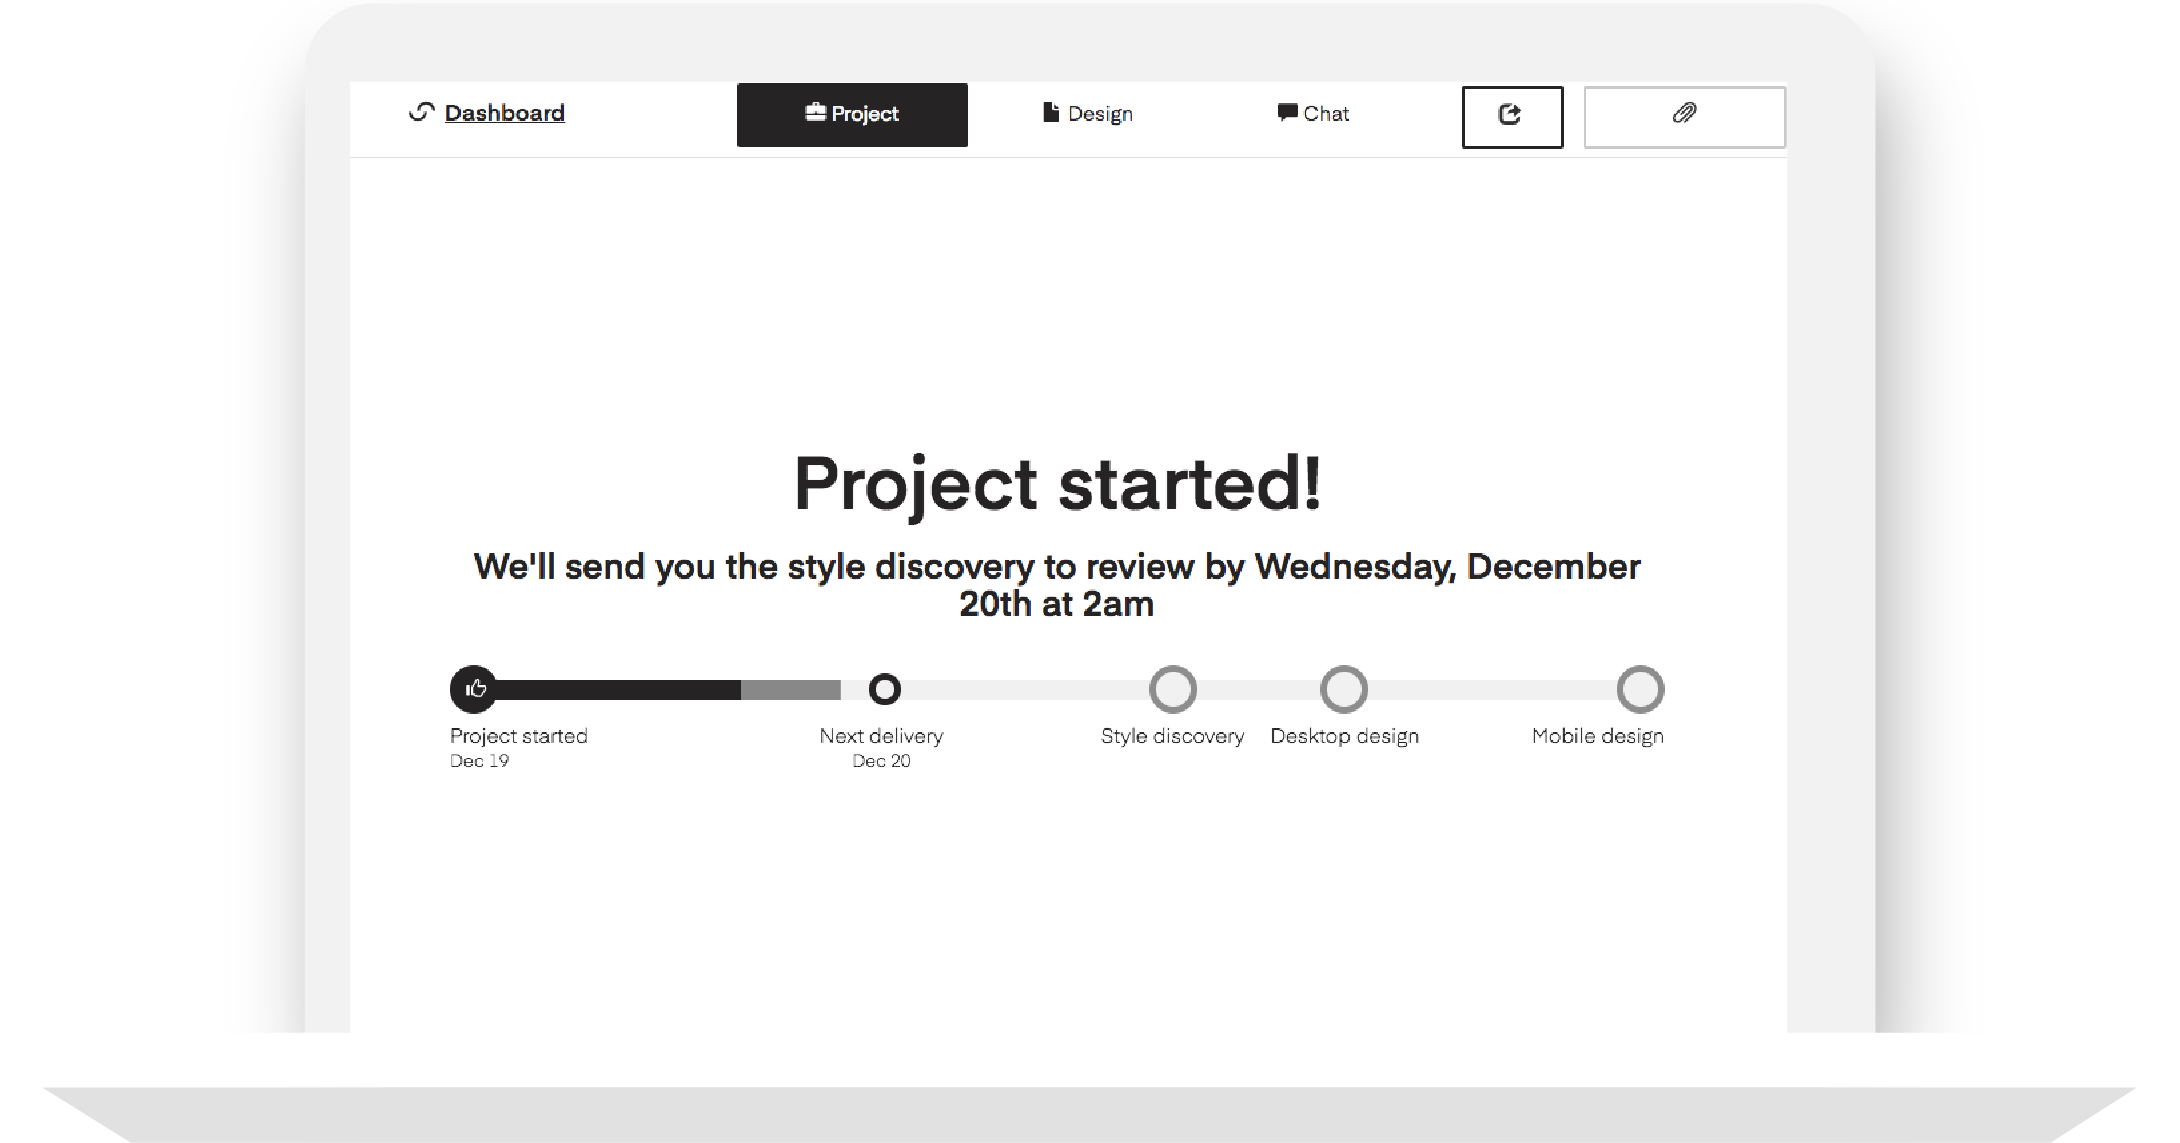 Where to see your project timelines